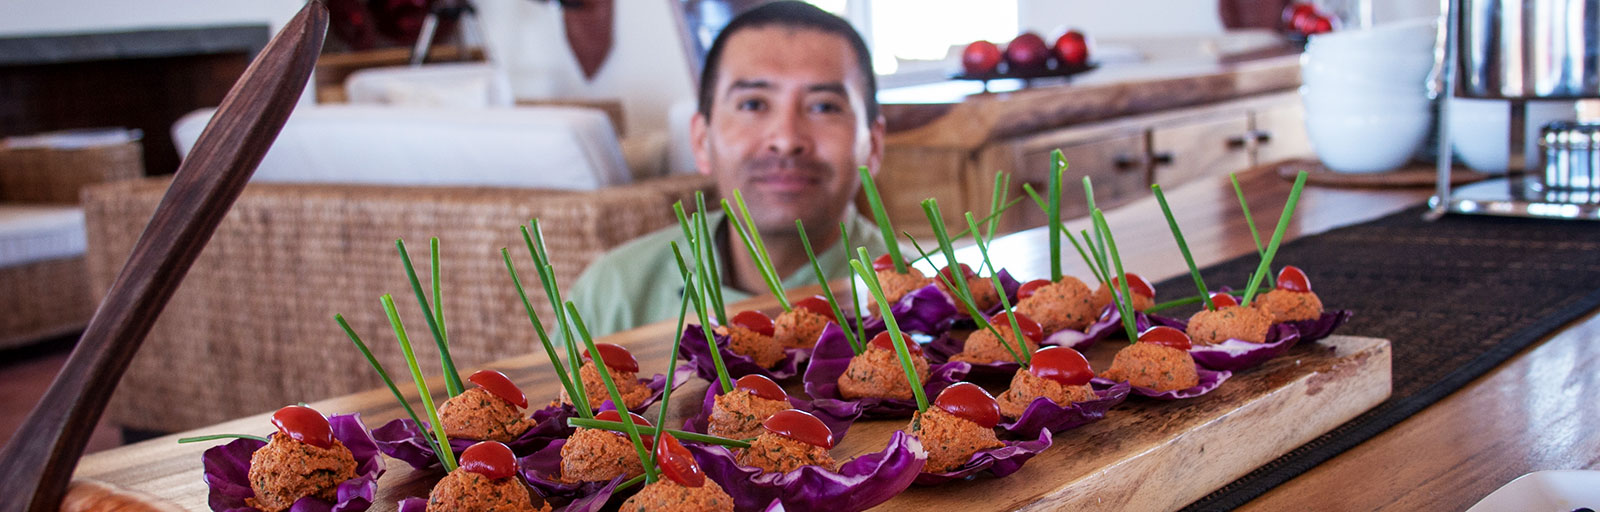 Cooking Classes & Yoga Retreats in Mexico: Fresh, Healthy Cuisine